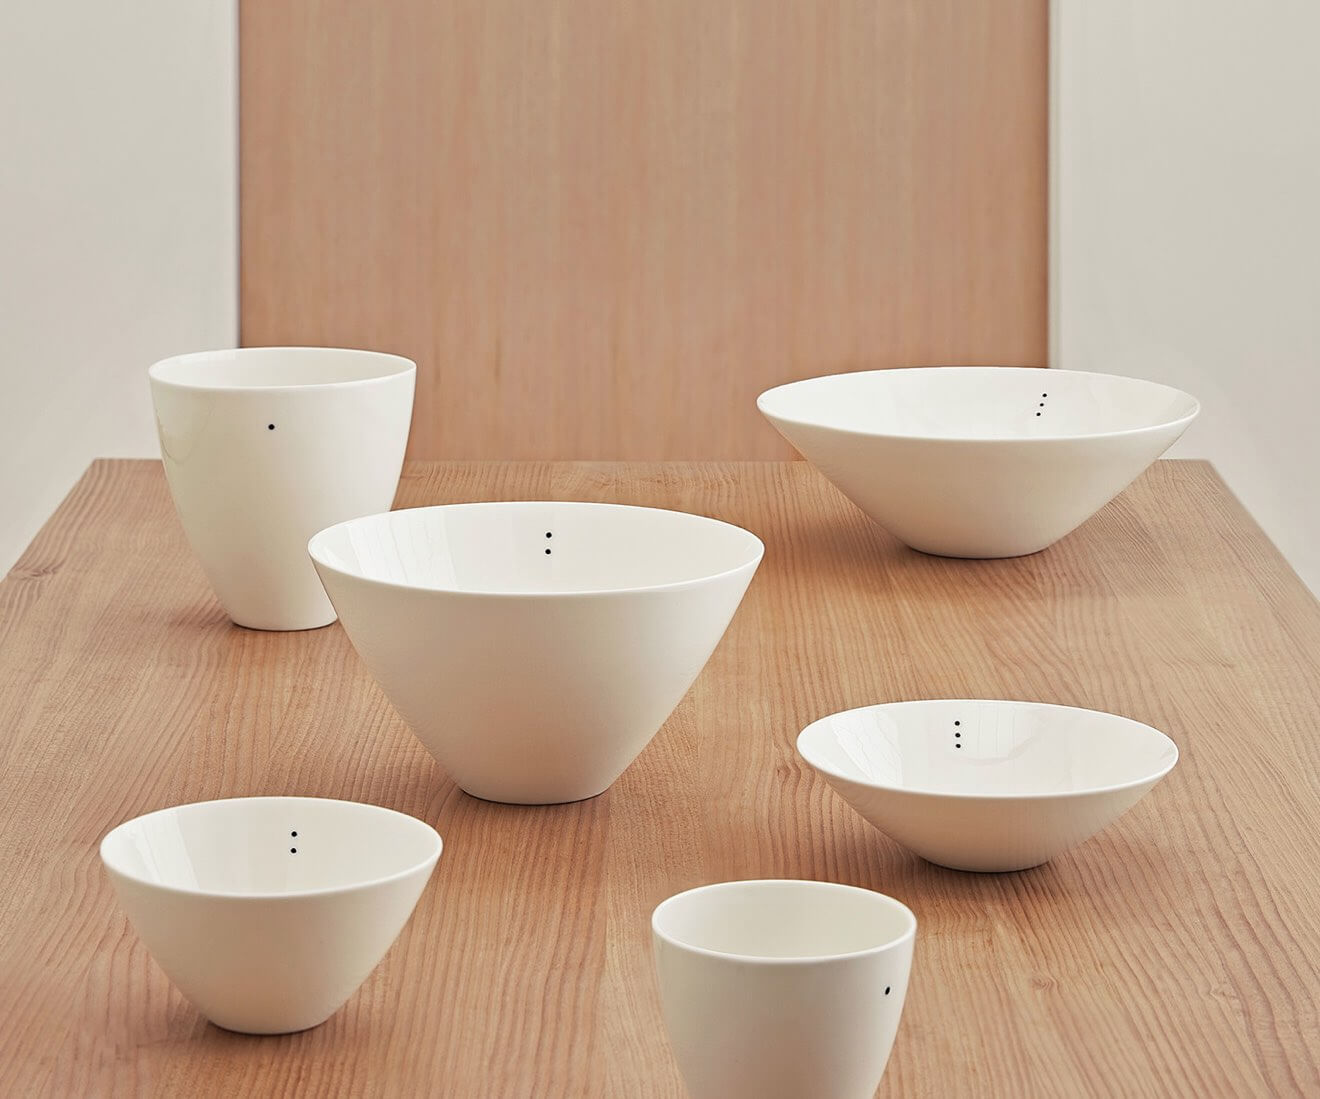 Interior photo of Motarasu design - Shiro Bowls - 2 sizes - 1-2-3 dots by Stilleben